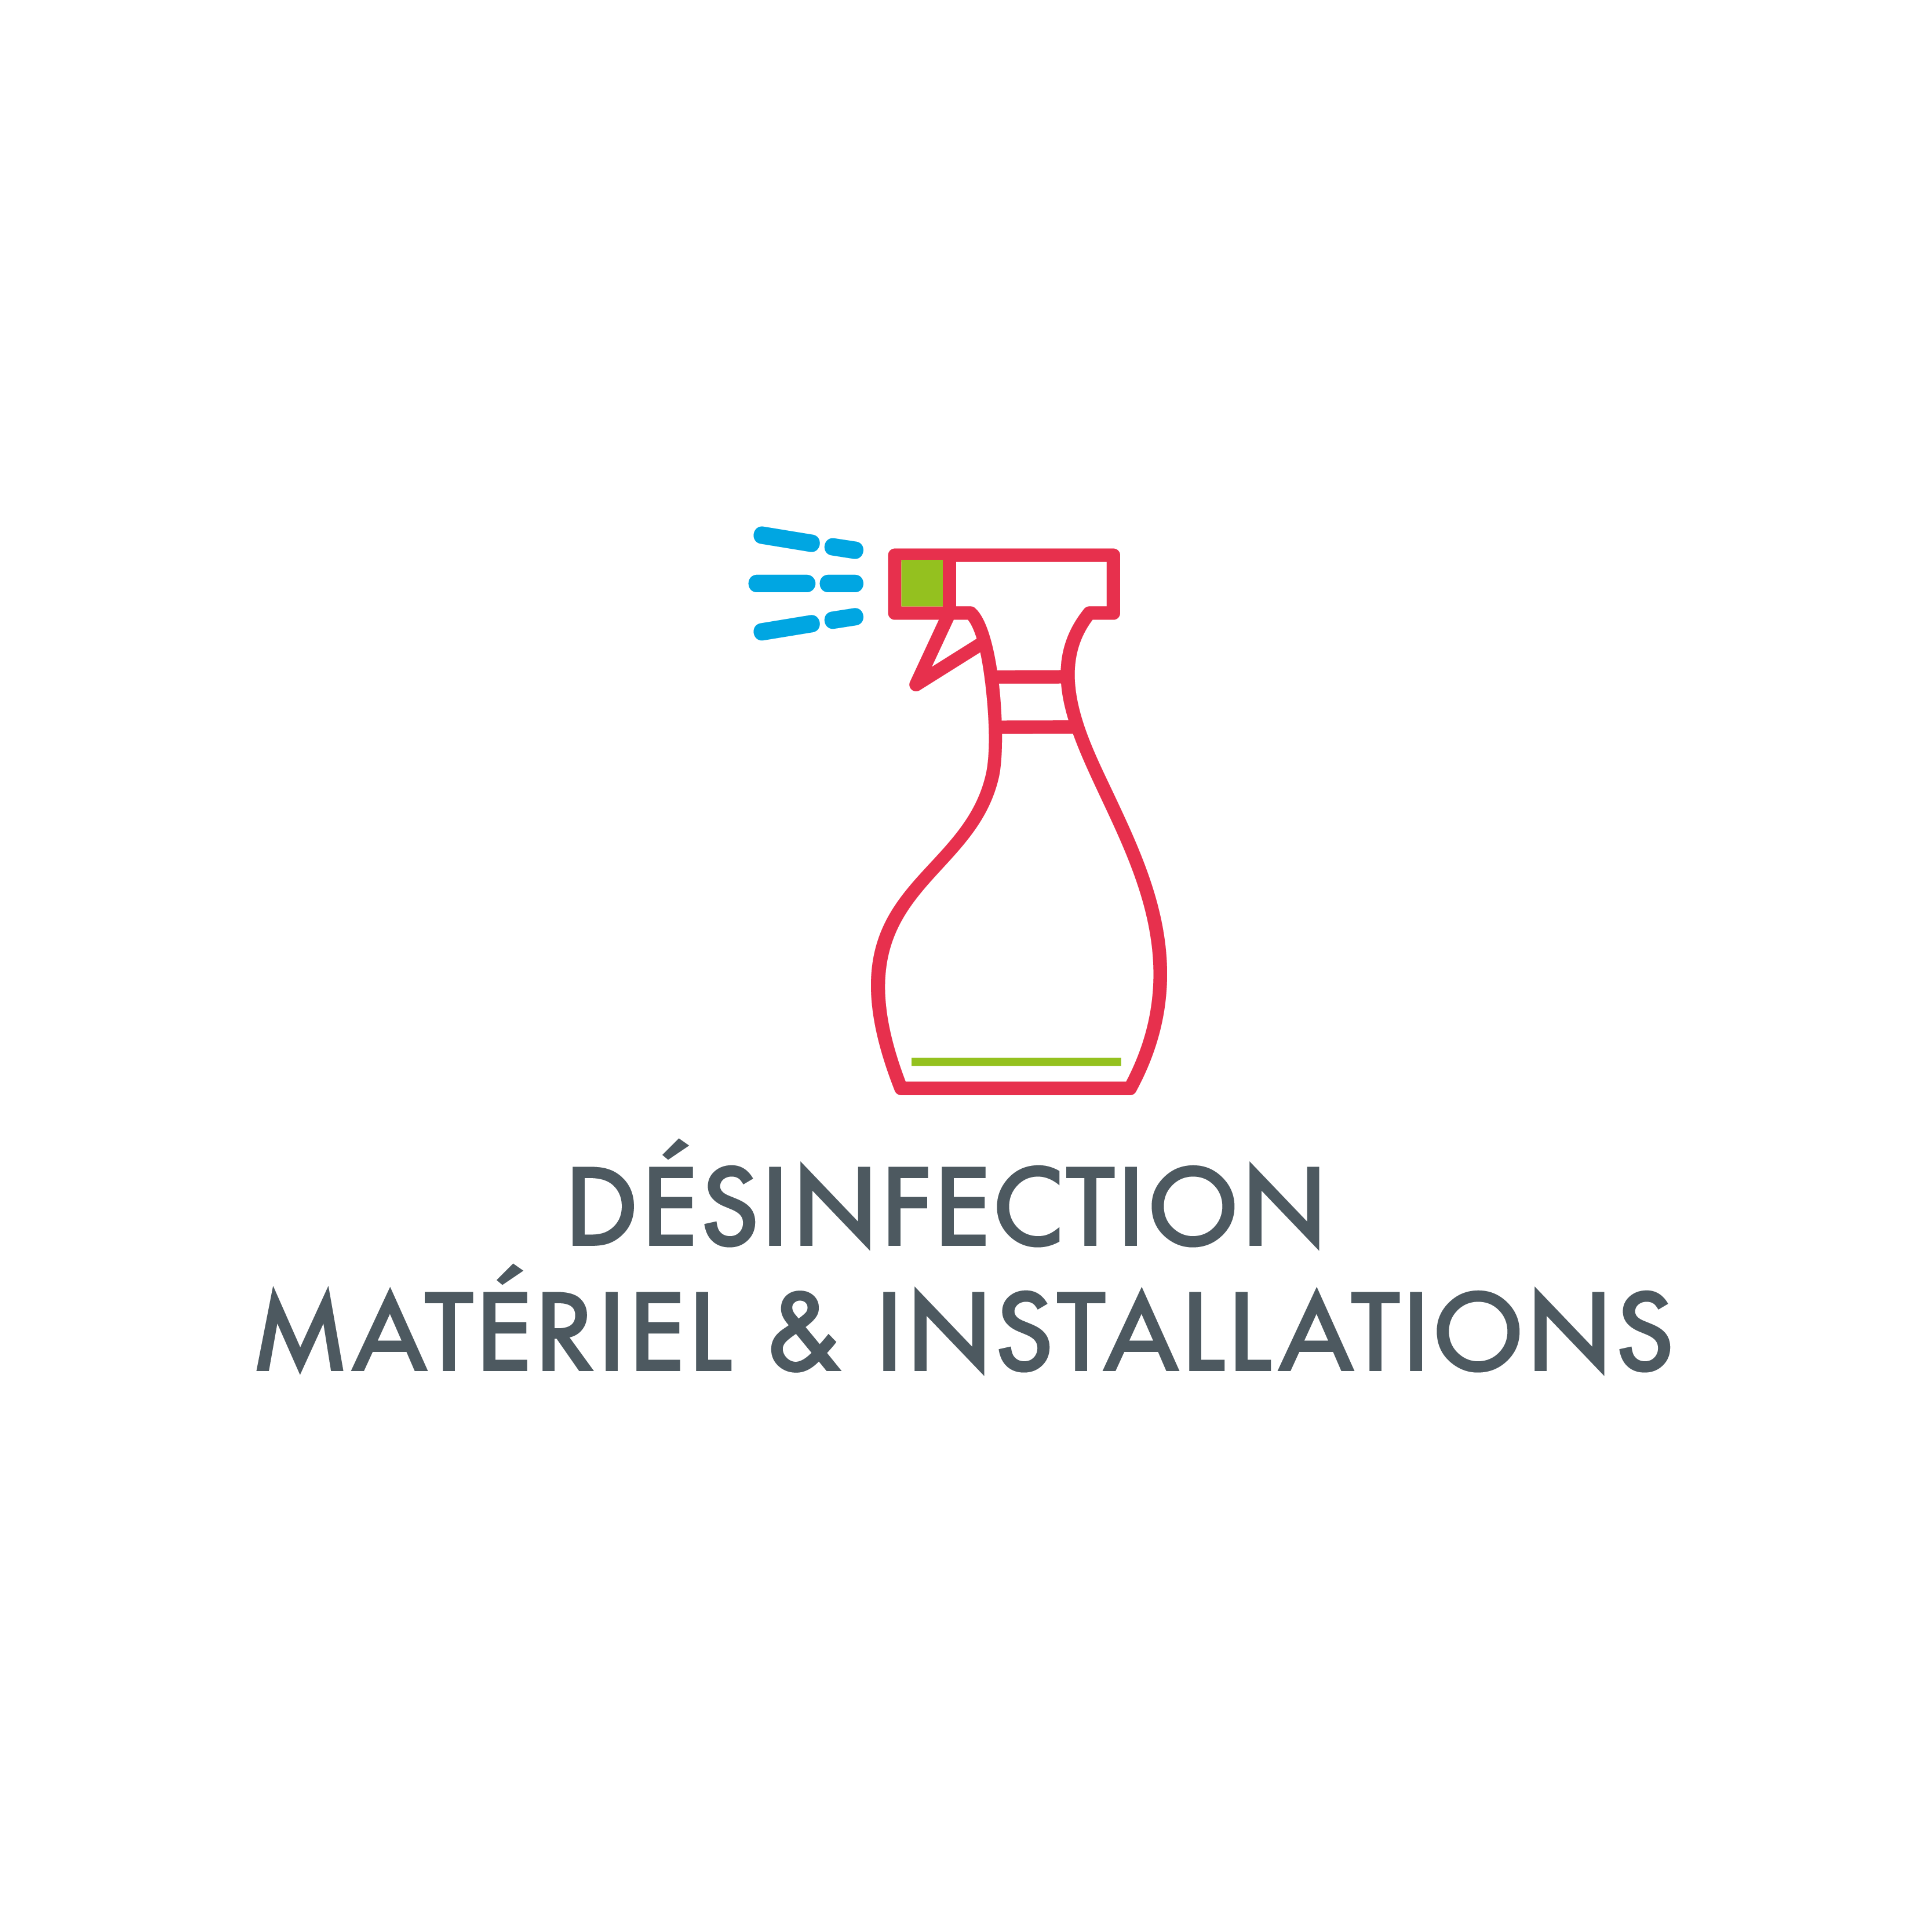 Desinfection_materiel_&_installations